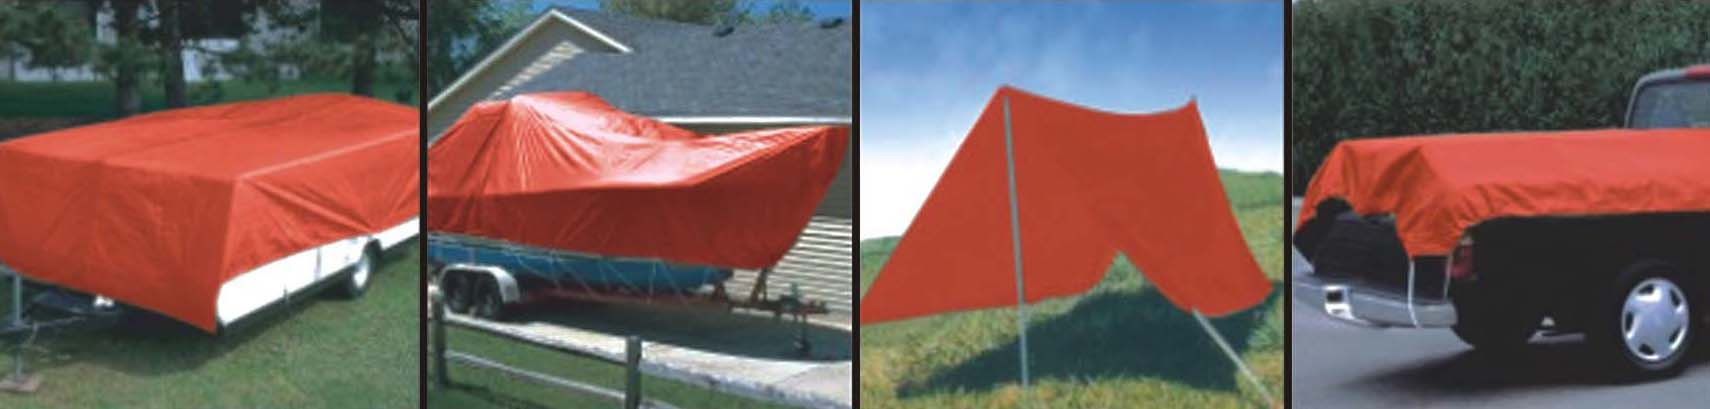 Red Tarpaulin Cover